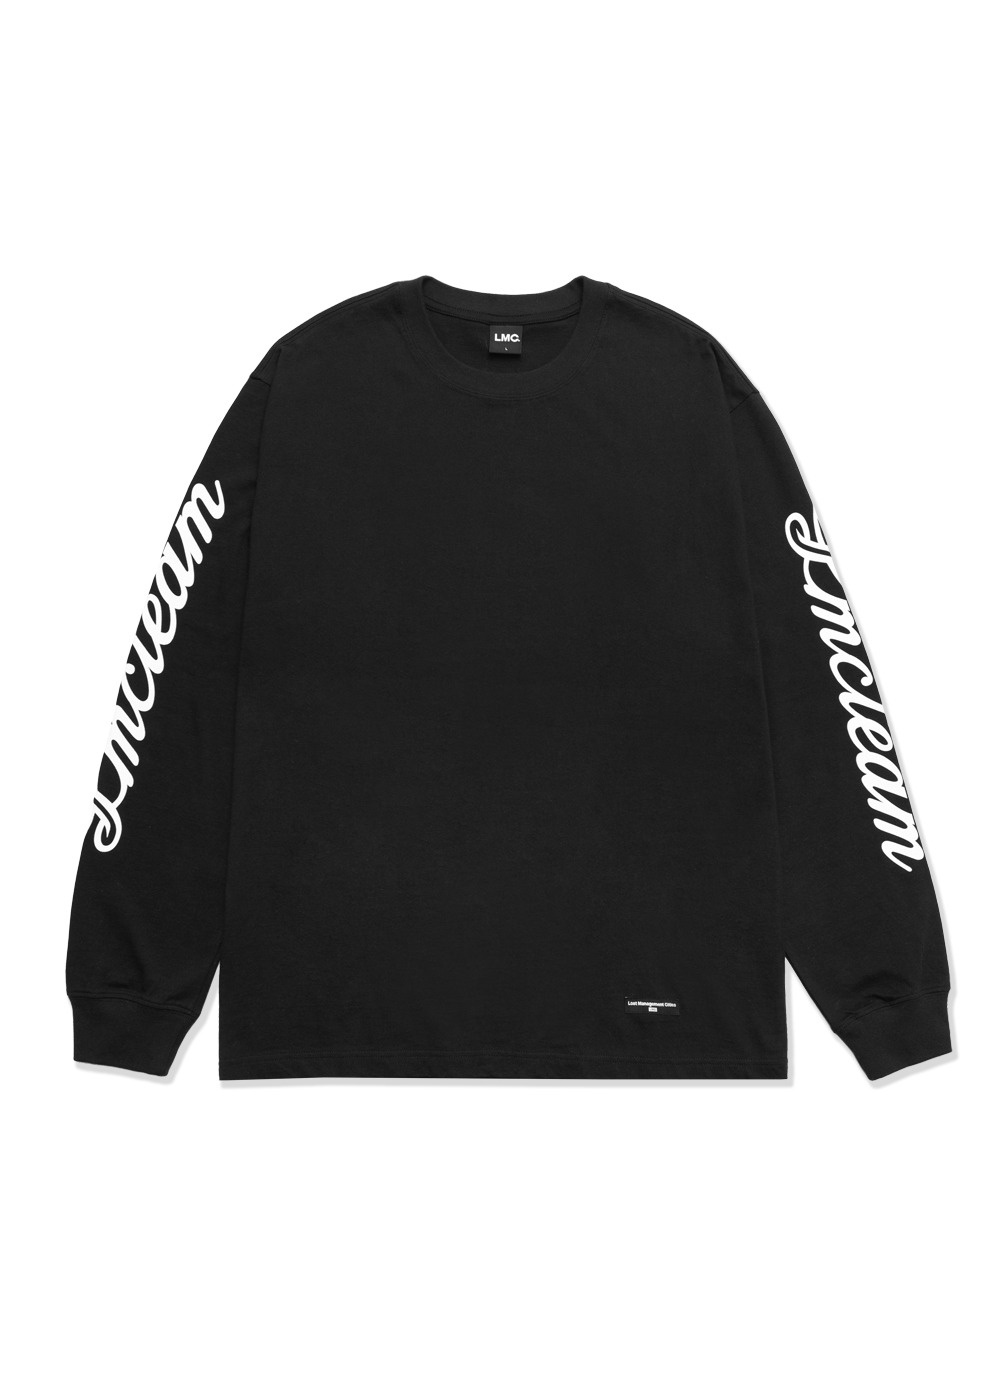 LMC TEAM EARTH LONG SLV TEE black